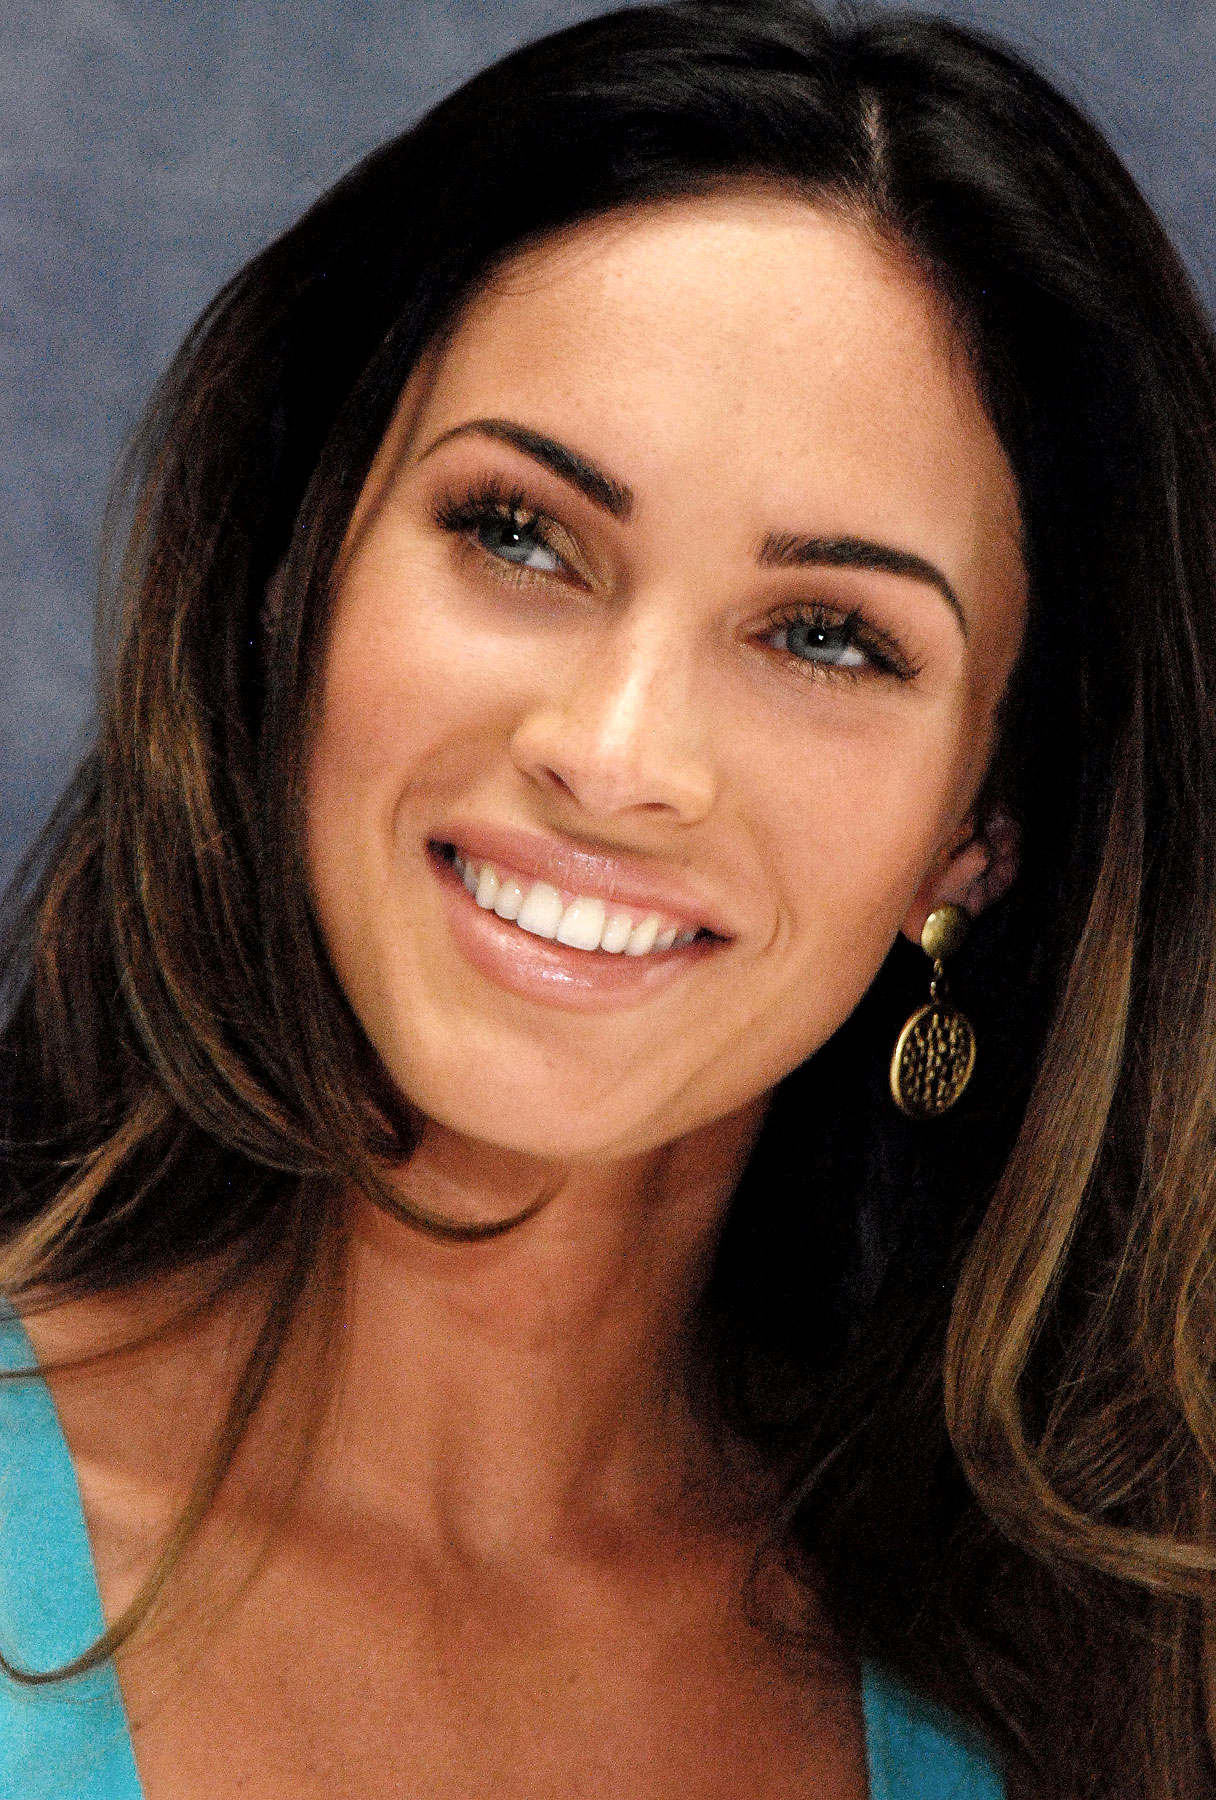 Megan Fox Calls Michael Bay 'Hitler'